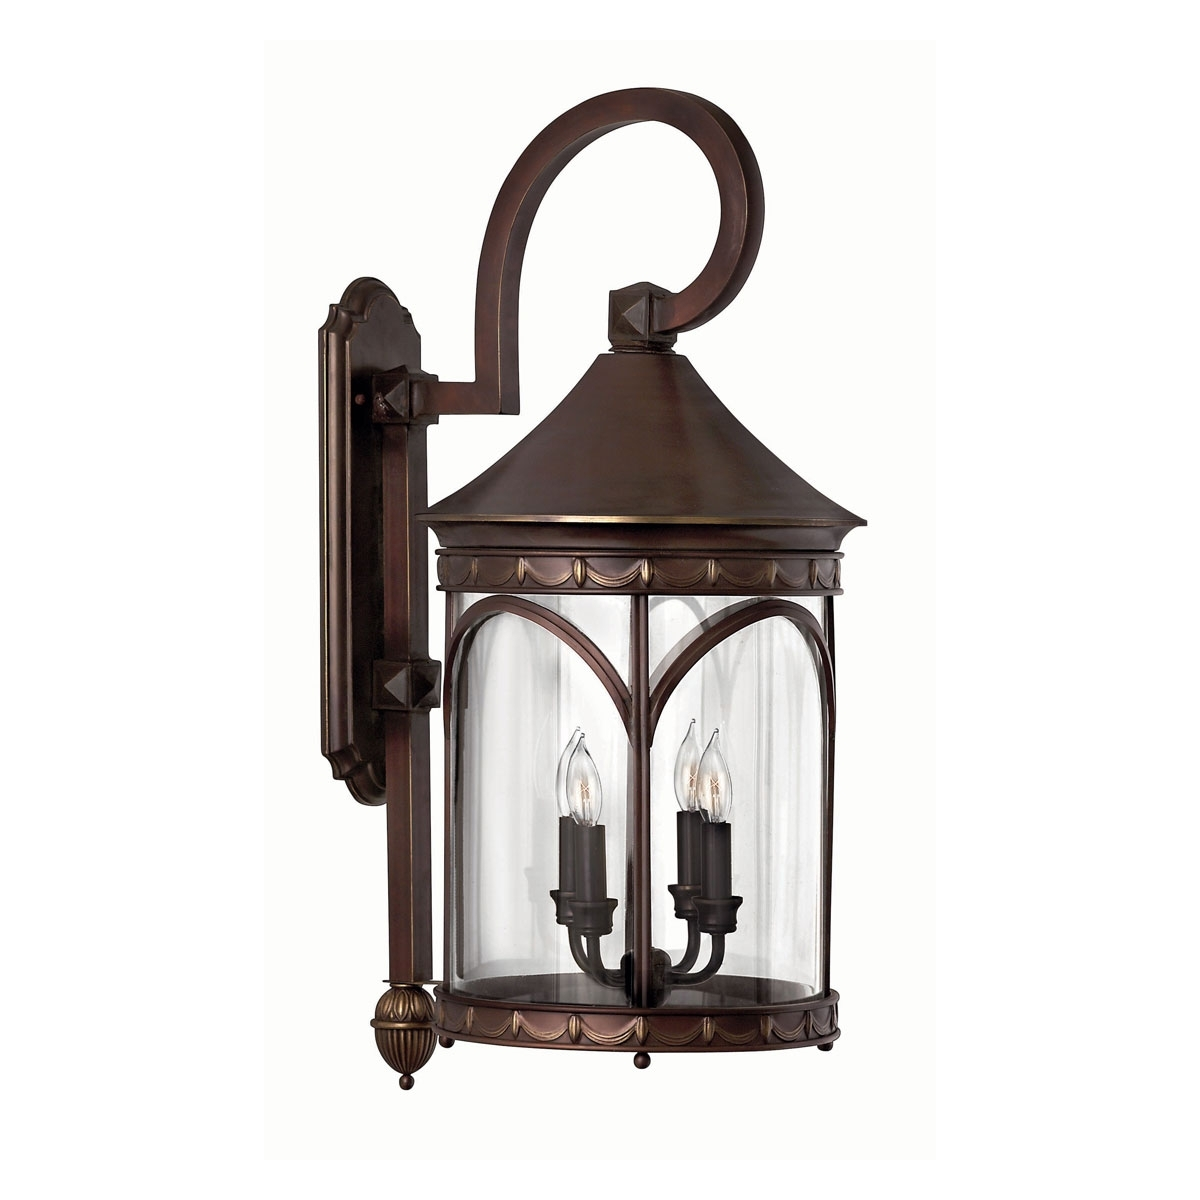 2018 2315cb – Large Wall Outdoor Light, 30 Inch, Lucerne Copper Bronze With Extra Large Wall Mount Porch Hinkley Lighting (View 2 of 20)